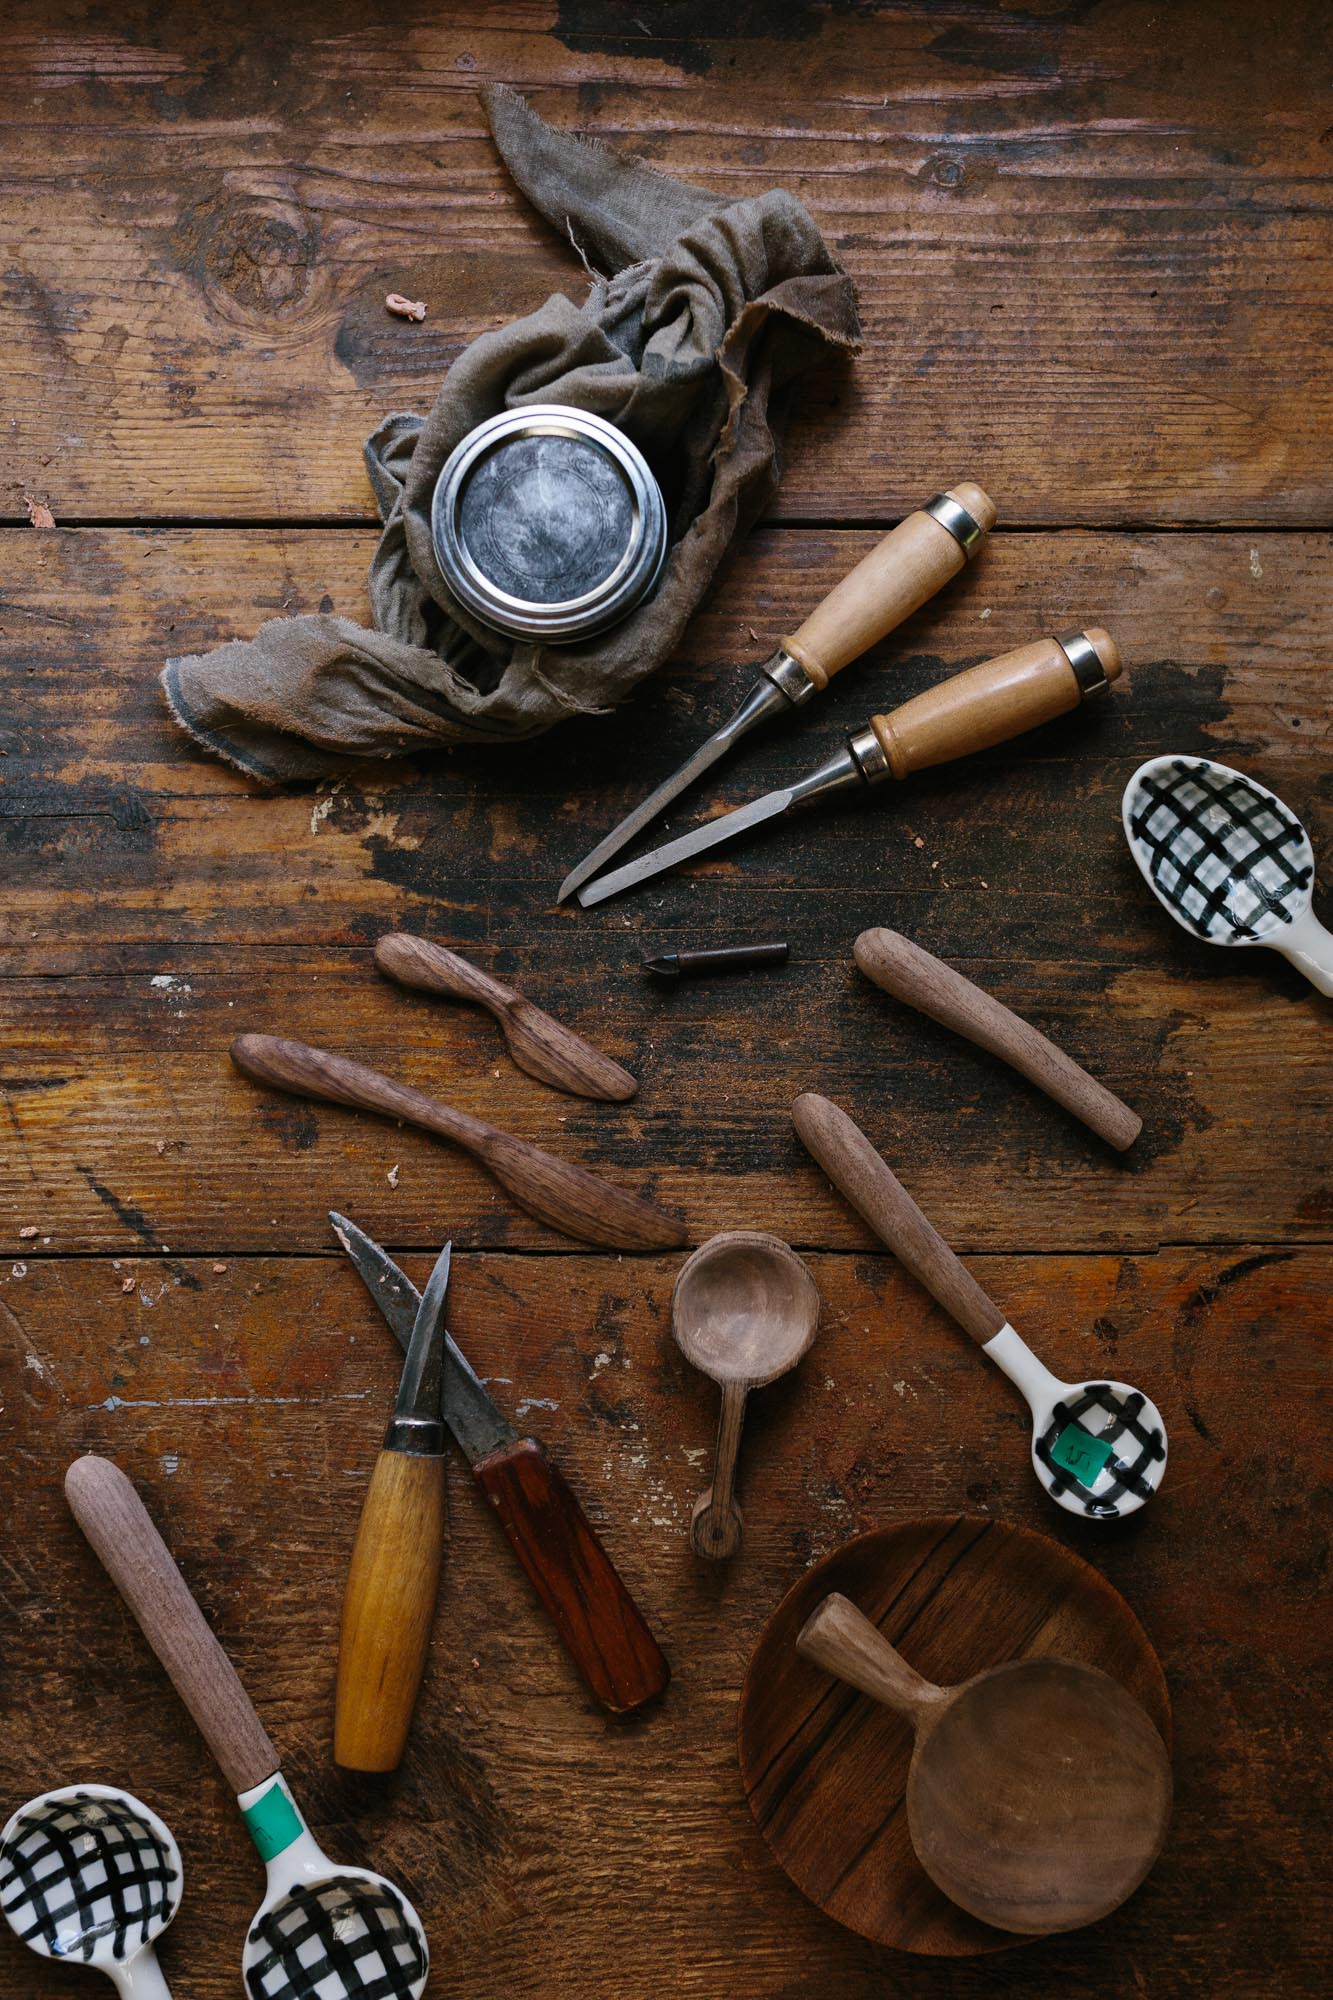 Melbourne lifestyle photographer Marnie Hawson's An Honest Trade project - woodworker Erin Malloy